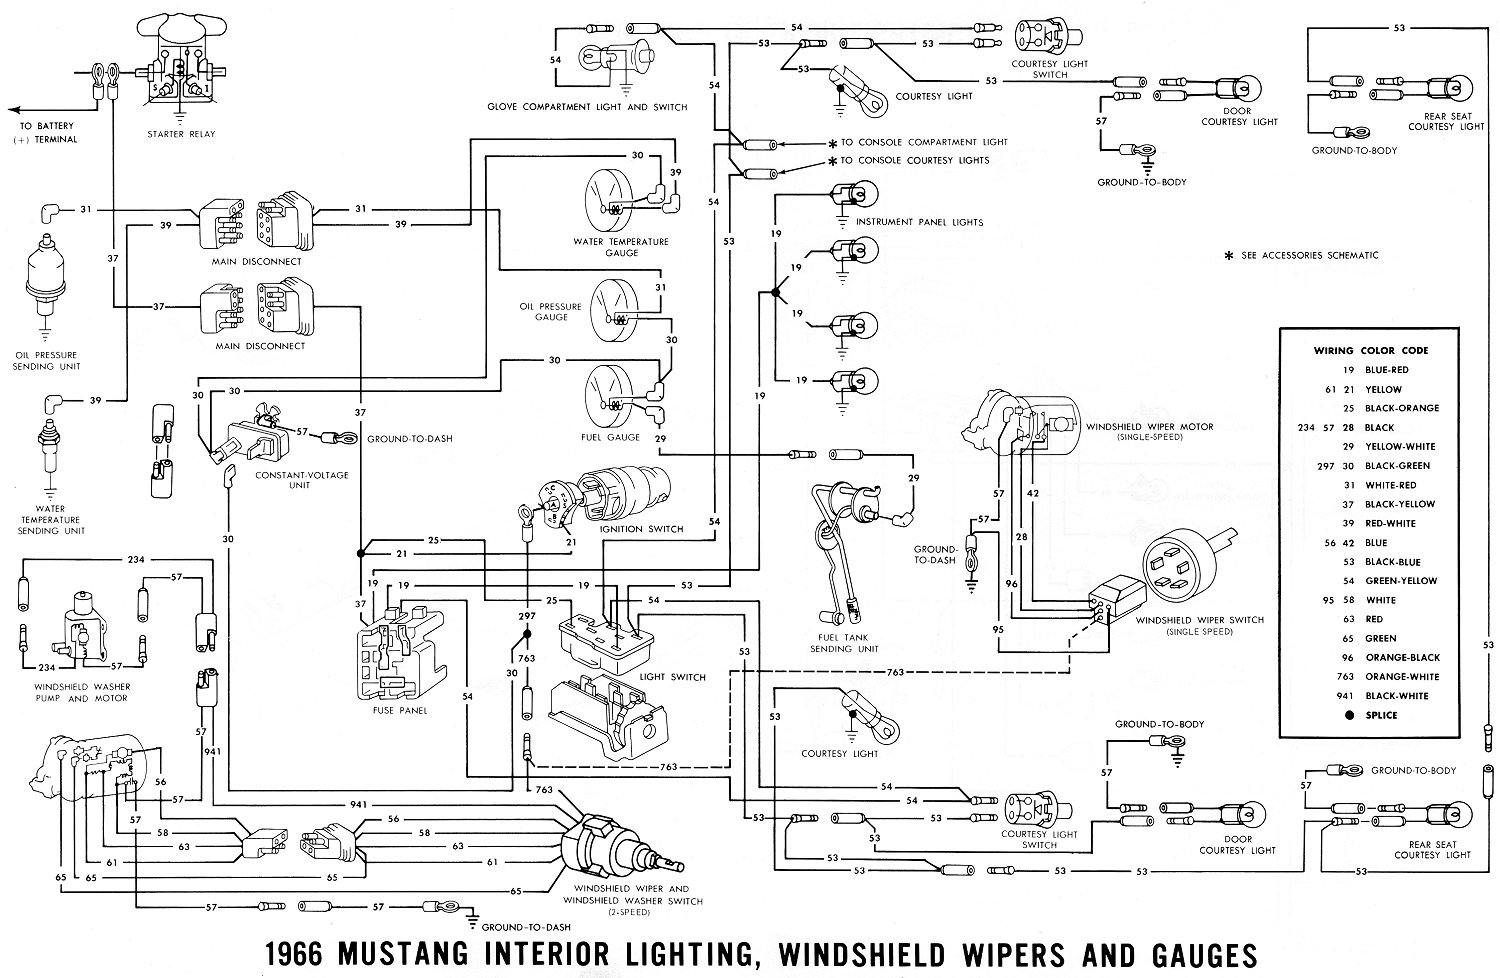 1966 mustang wiring diagrams average joe restoration rh averagejoerestoration com 1966 mustang engine bay wiring diagram 1966 Mustang Headlight Wiring Diagram